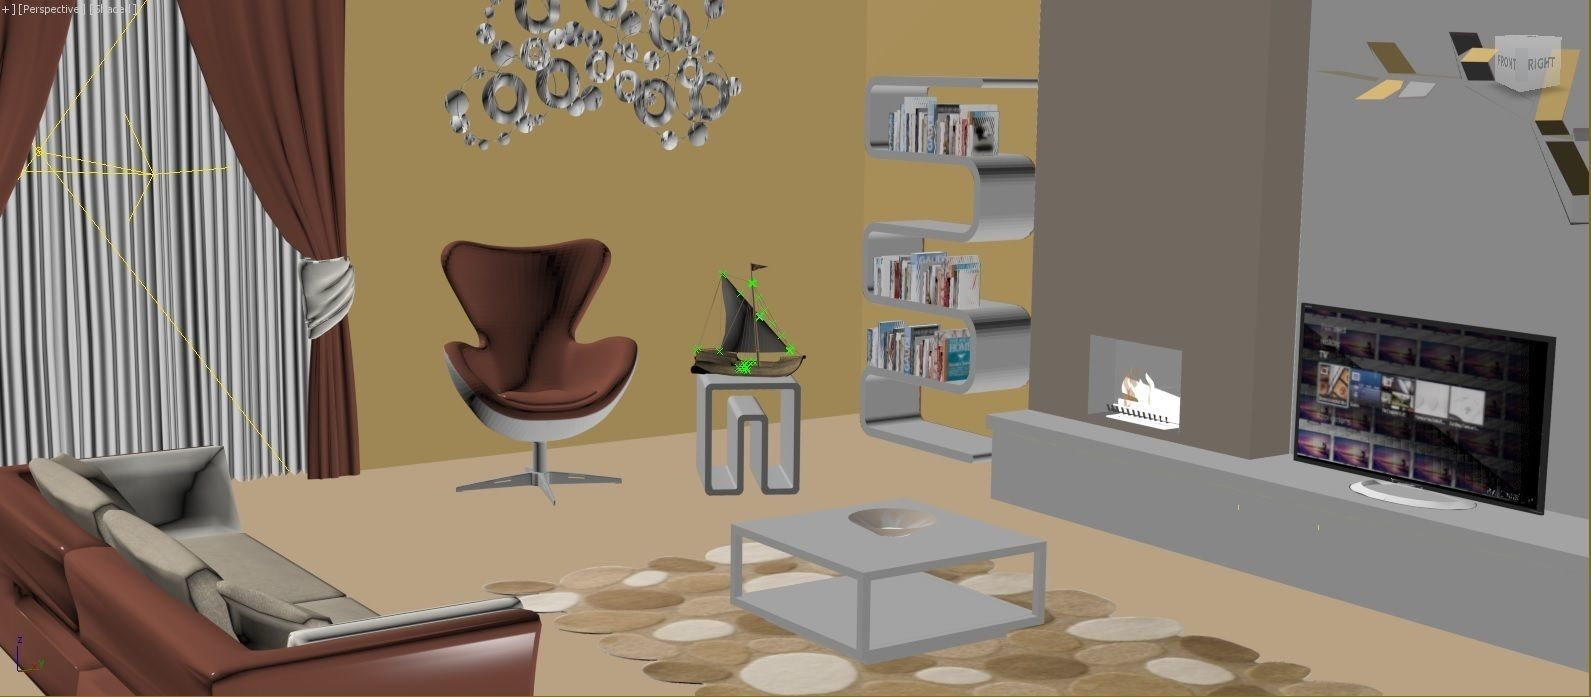 Interior design living room 3d model buy interior design for 3d interior design of living room